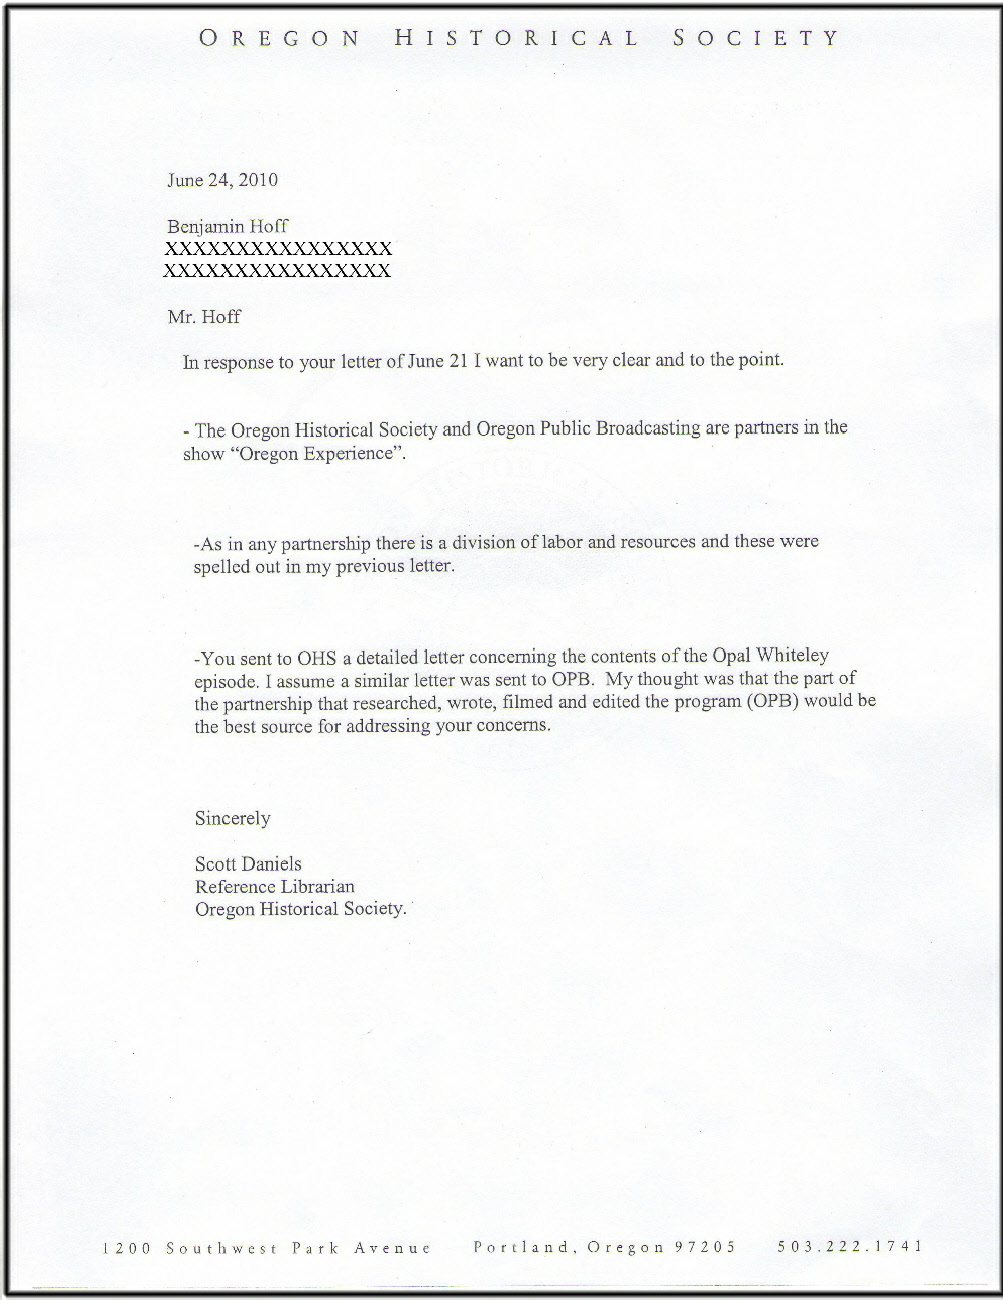 Reply from Scott Daniels of OHS to Benjamin Hoff June 2010